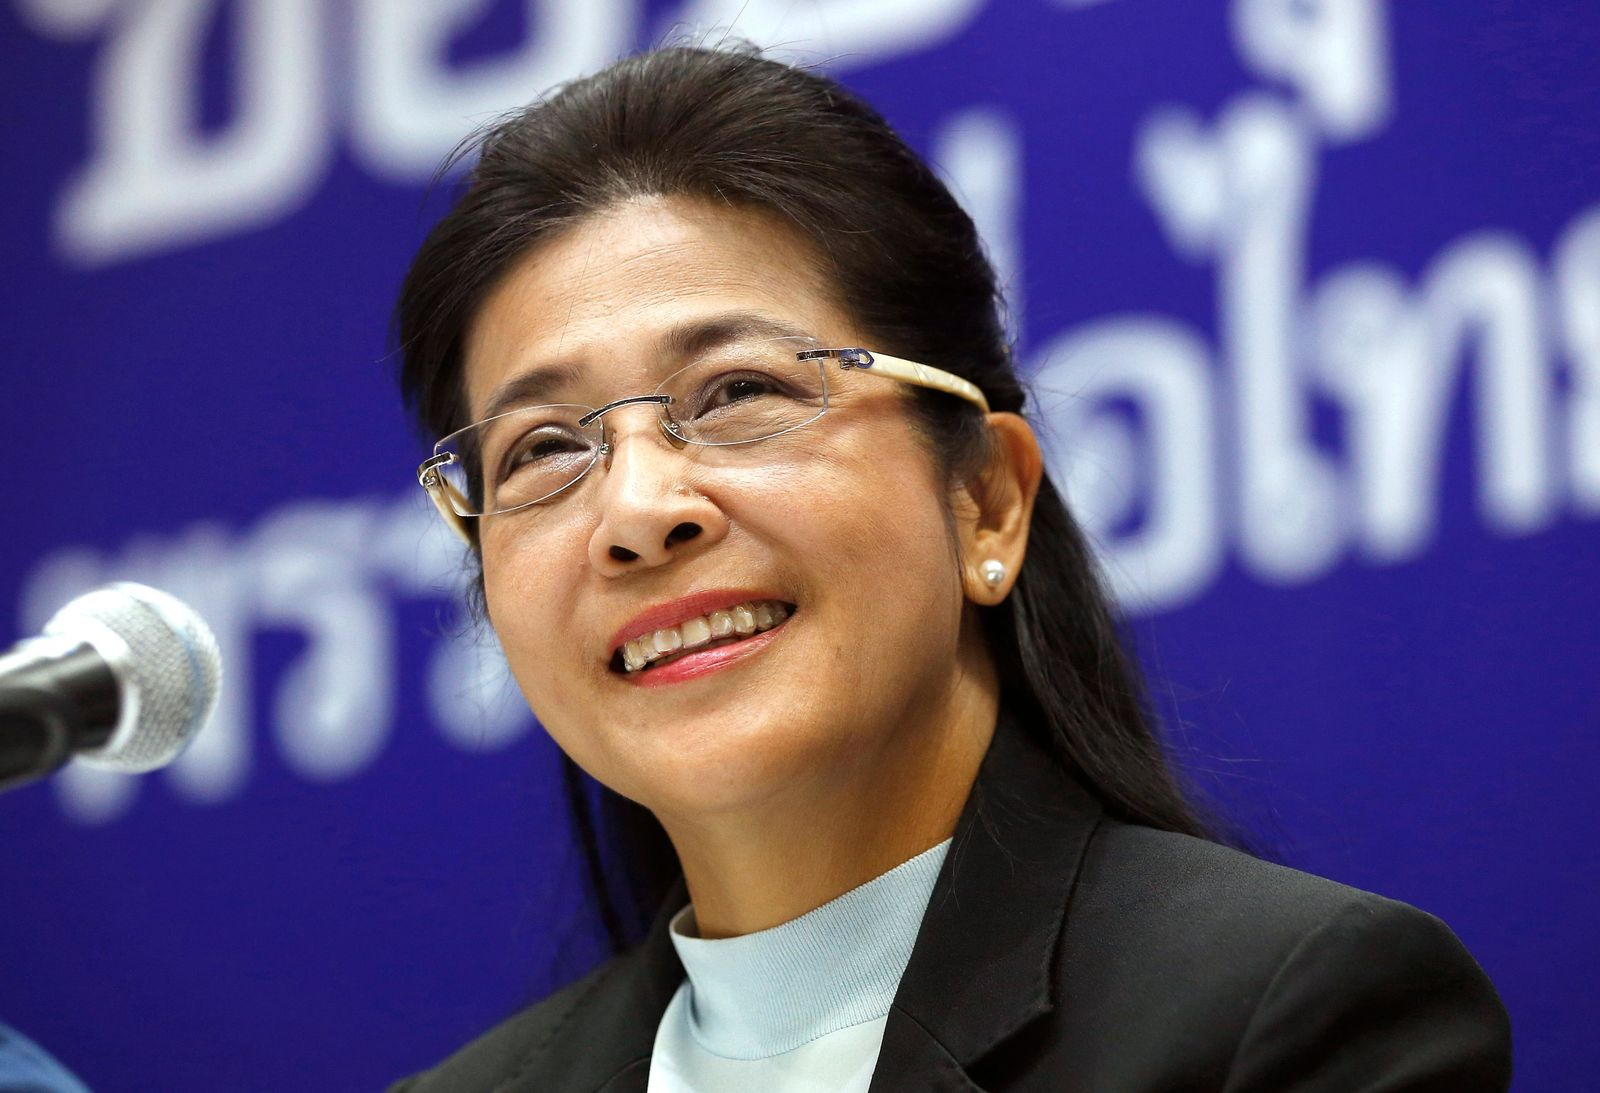 Pheu Thai party leader Sudarat Keyuraphan smiles during a press conference at the party headquarters in Bangkok, Thailand, Monday, March 25, 2019. Thailand's Election Commission said it will announce the results of 350 constituency seats on Monday but full vote counts, which are needed to determine the allocation of 150 other seats in the House of Representatives, won't be available until Friday. (AP Photo/Sakchai Lalit)